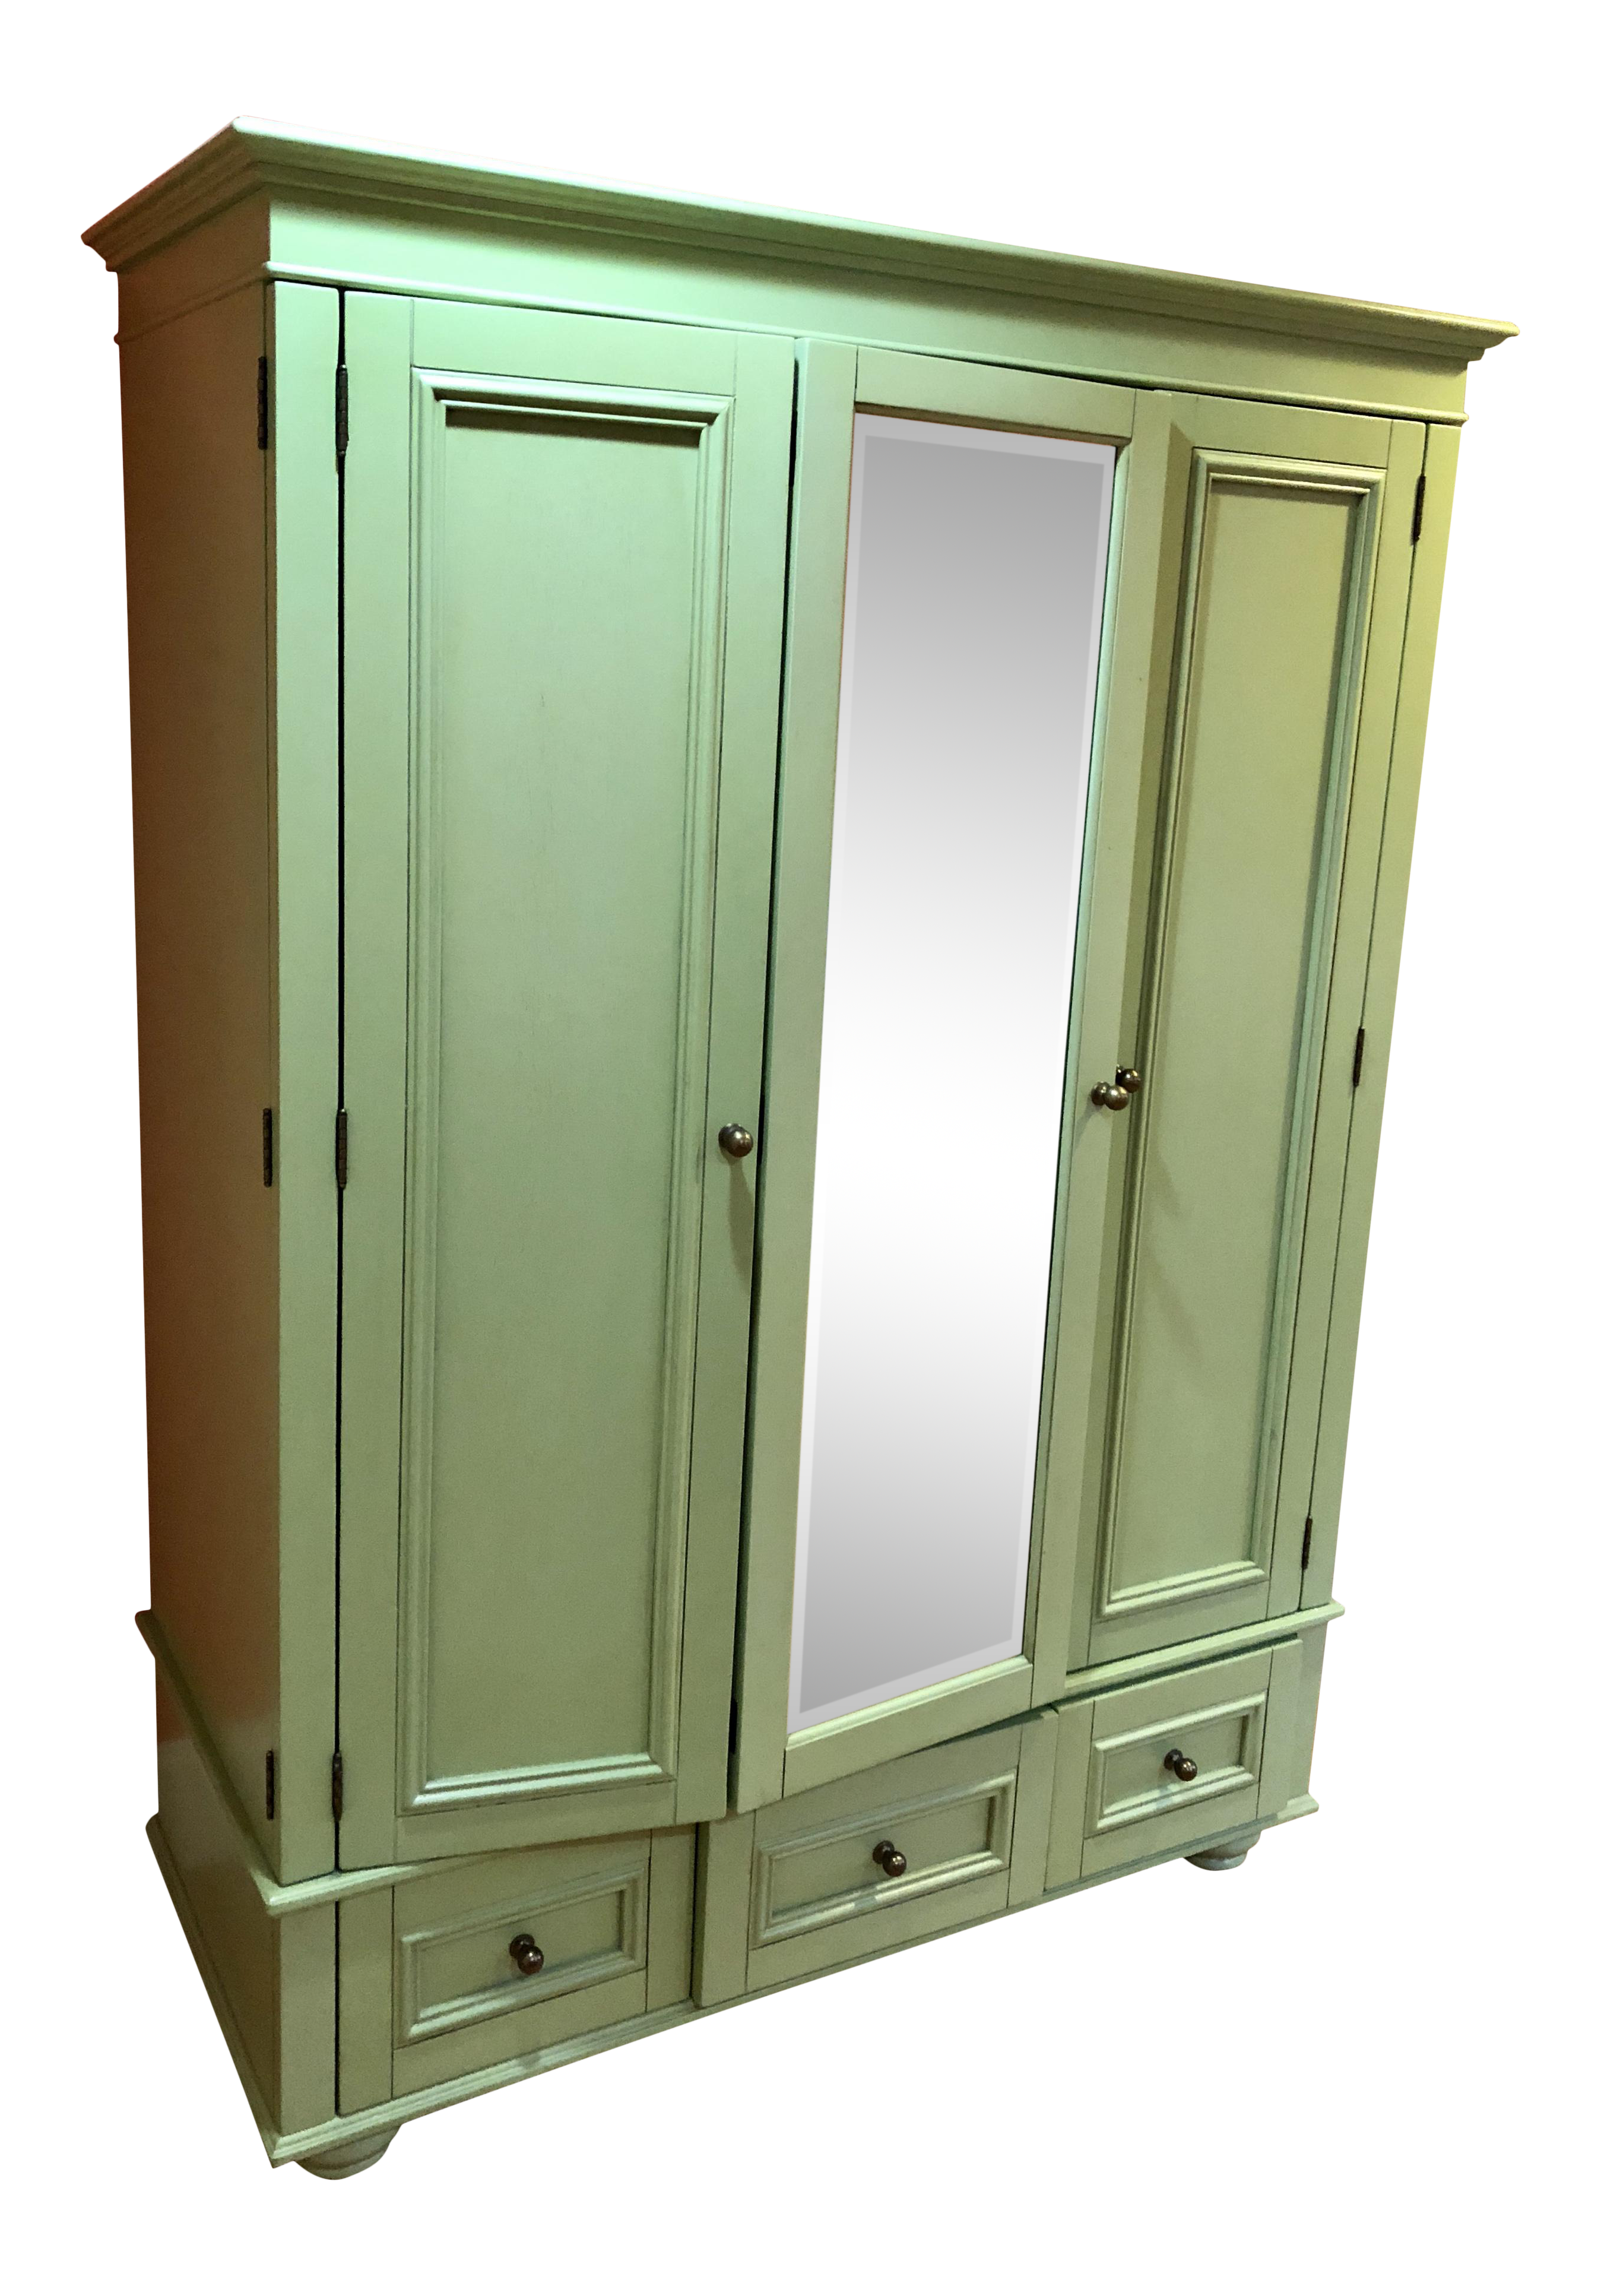 Pottery Barn Green Bedroom Armoire